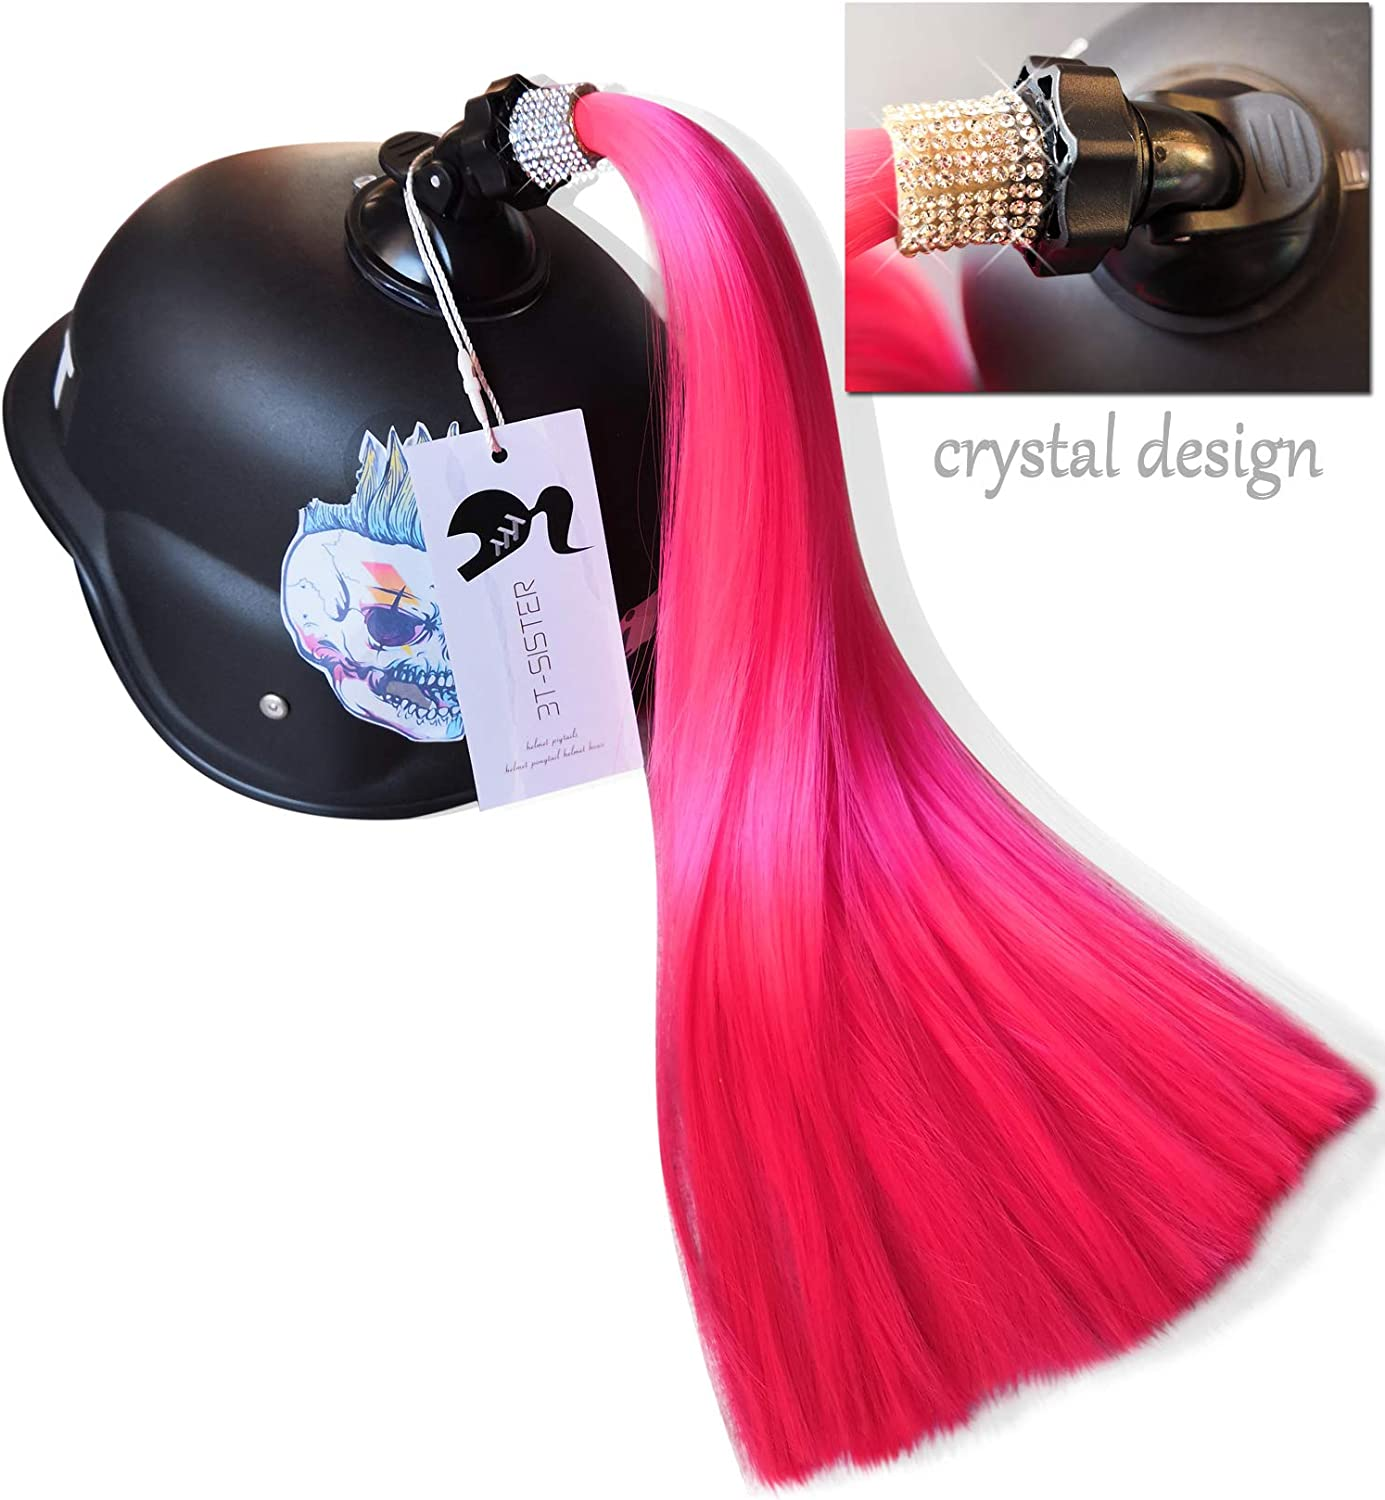 3T-SISTER Crystal Helmet Pigtails 14inch Pink Helmet Ponytail Decoration for Motorcycle Bicycle Ski Helmet Accessories Reusable Suction Cup Rhinestone Design